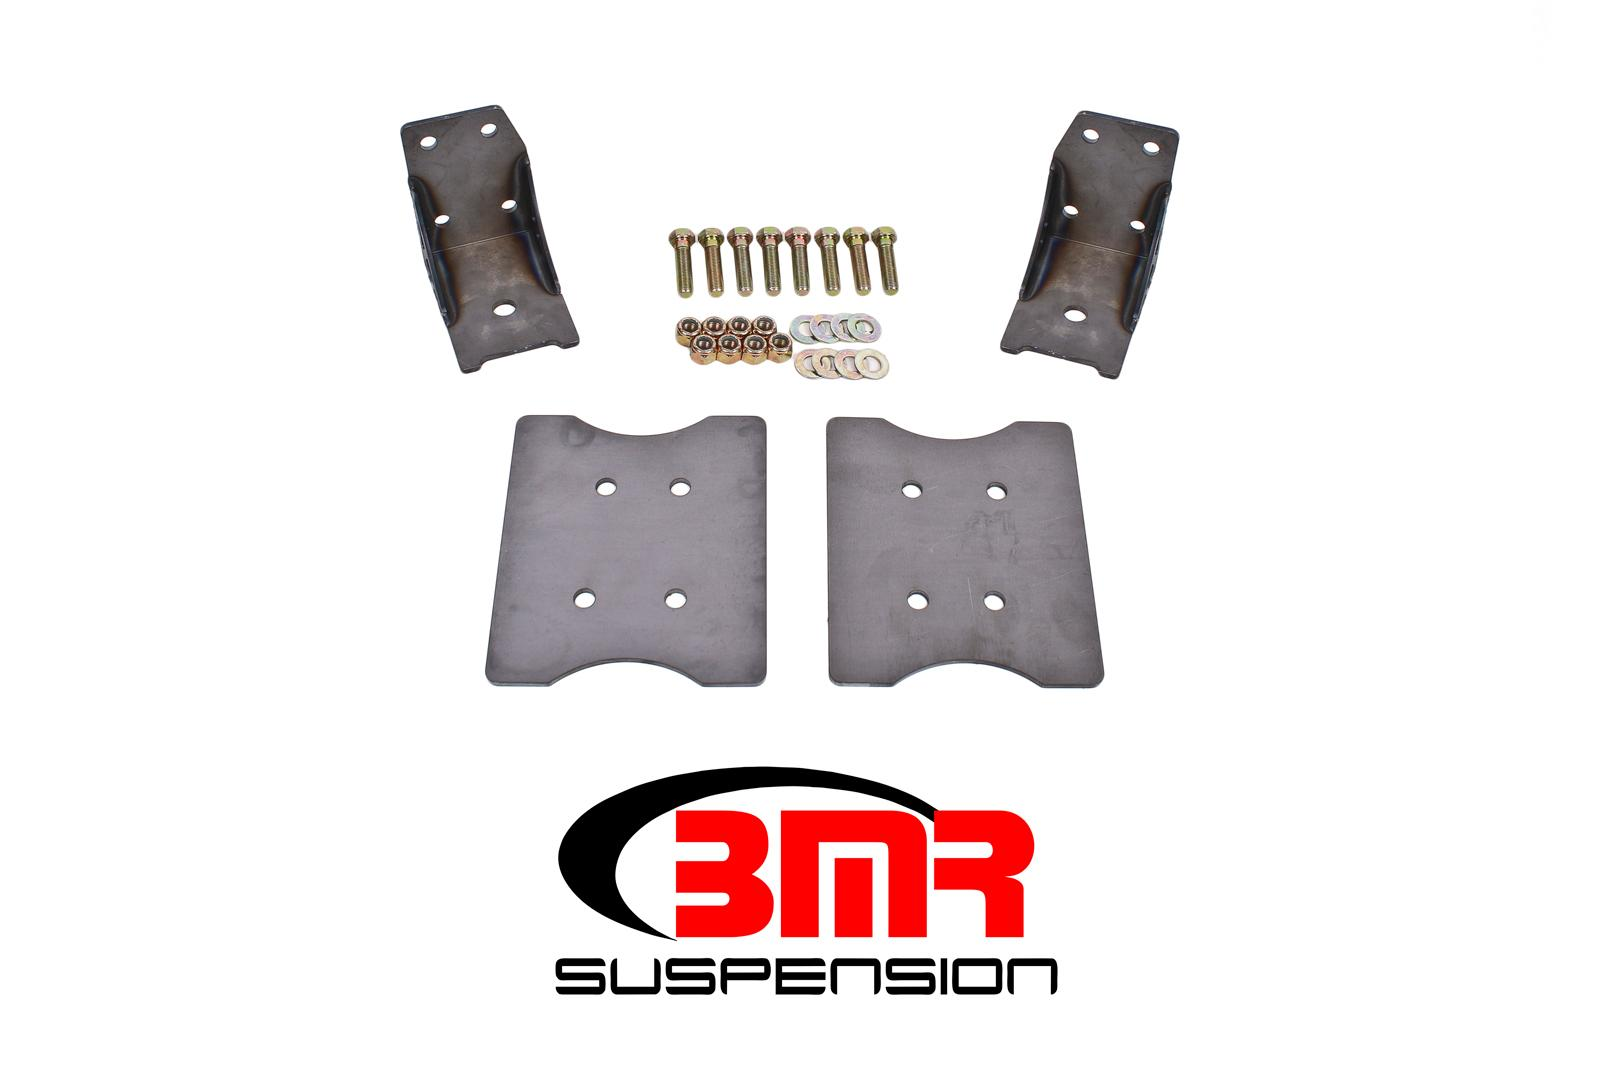 1979-2004 Ford Mustang BMR Suspension Plate Style Torque Box Reinforcement Plate Kit - Lower Only